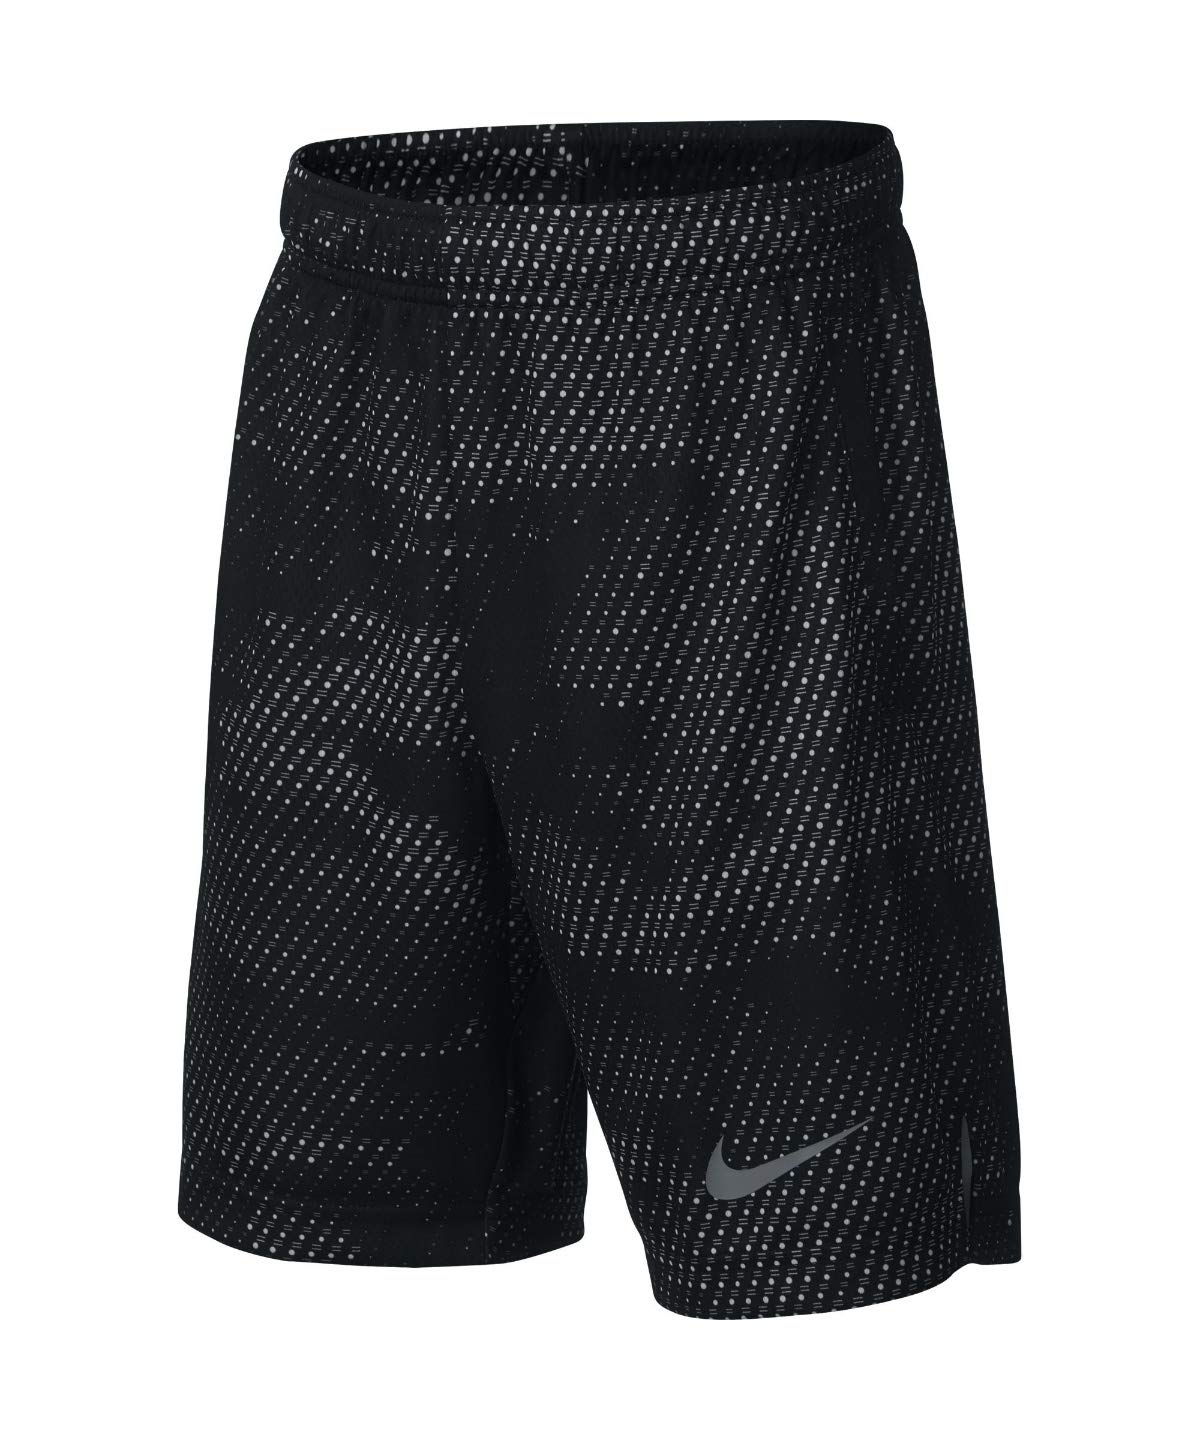 Nike Boy's Athletic Dry Printed Fly Comfortable Elastic Training Shorts with Pockets (Black/X-Small)